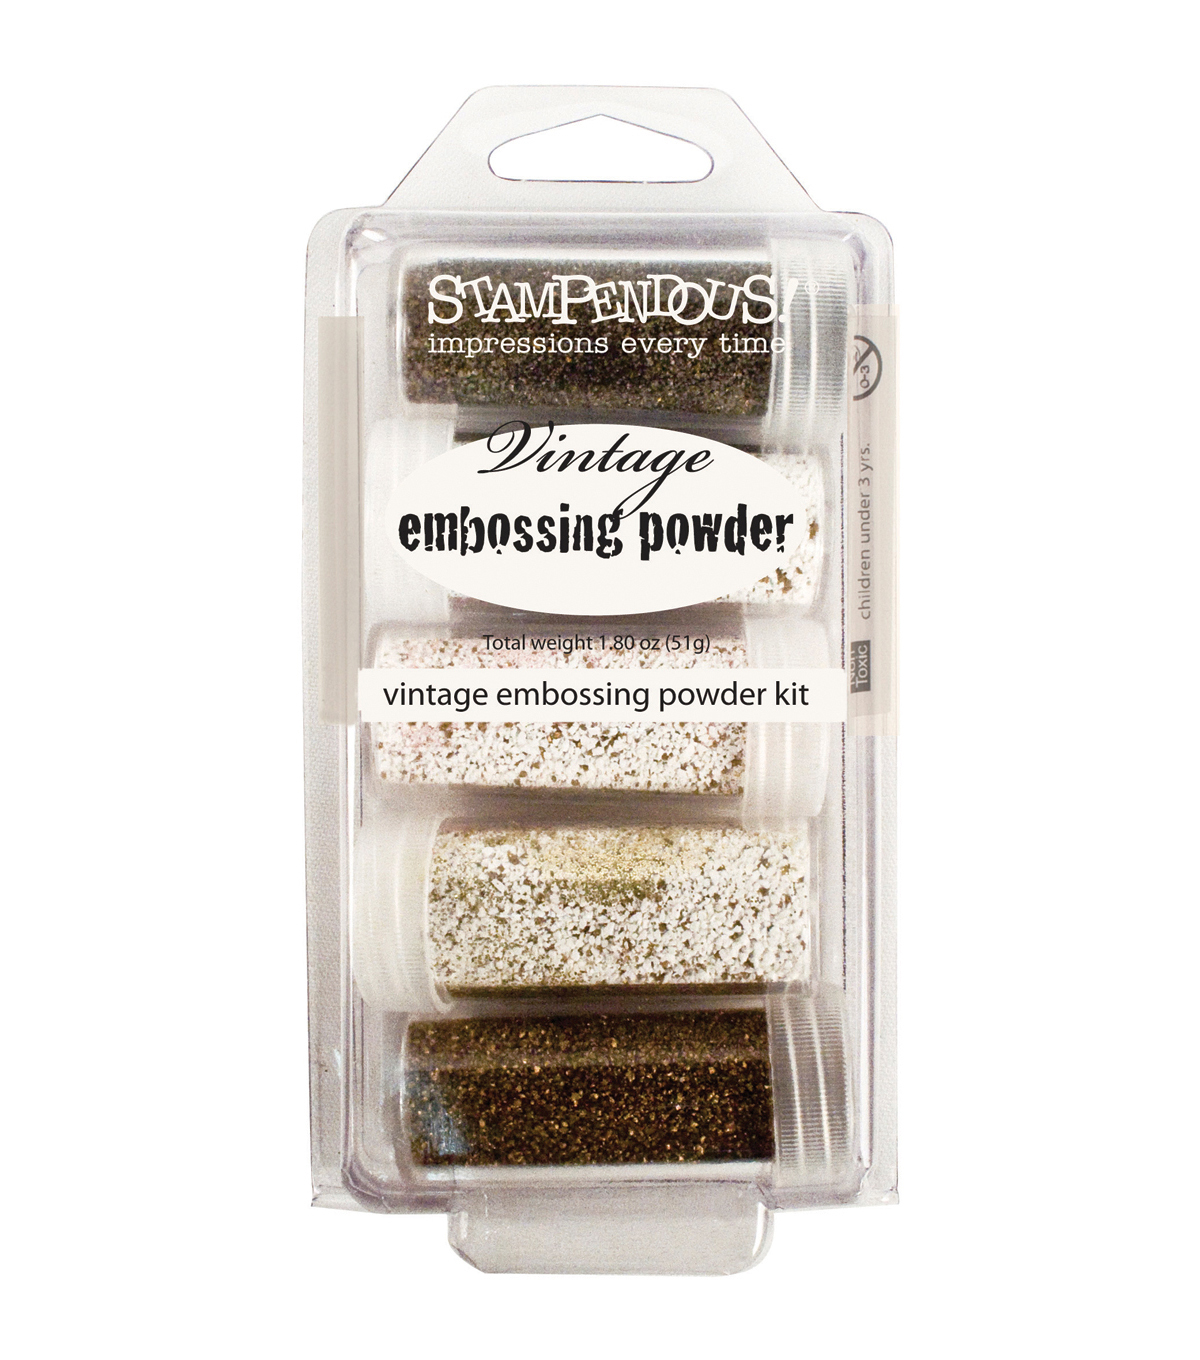 Stampendous Embossing Powder Kit 5/Pkg-Frantage